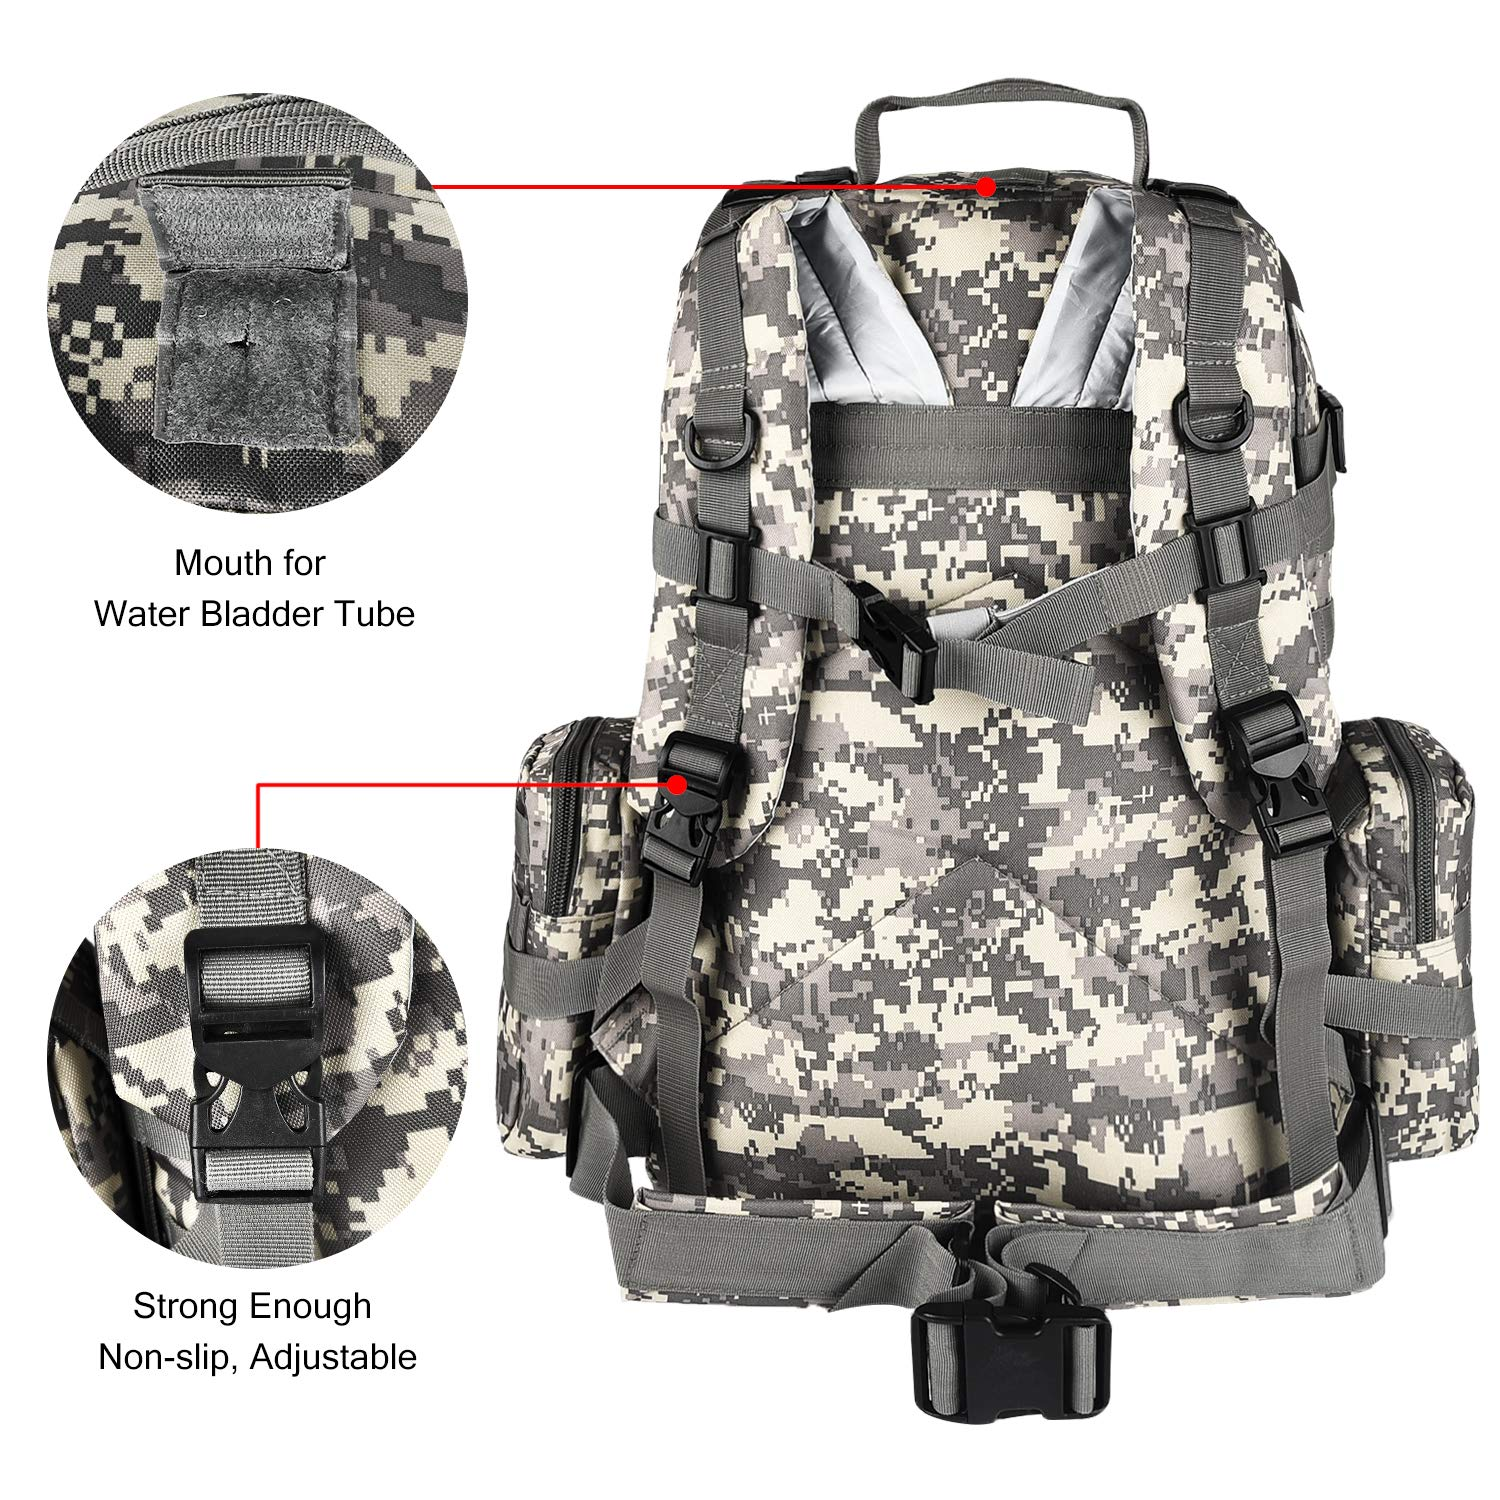 CVLIFE Tactical Military Backpack 60L Built-up Army Rucksacks Outdoor 3 Day Assault Pack Combat Molle Backpack for Hunting Hiking Fishing with Flag Patch Camouflage ACU by CVLIFE (Image #8)